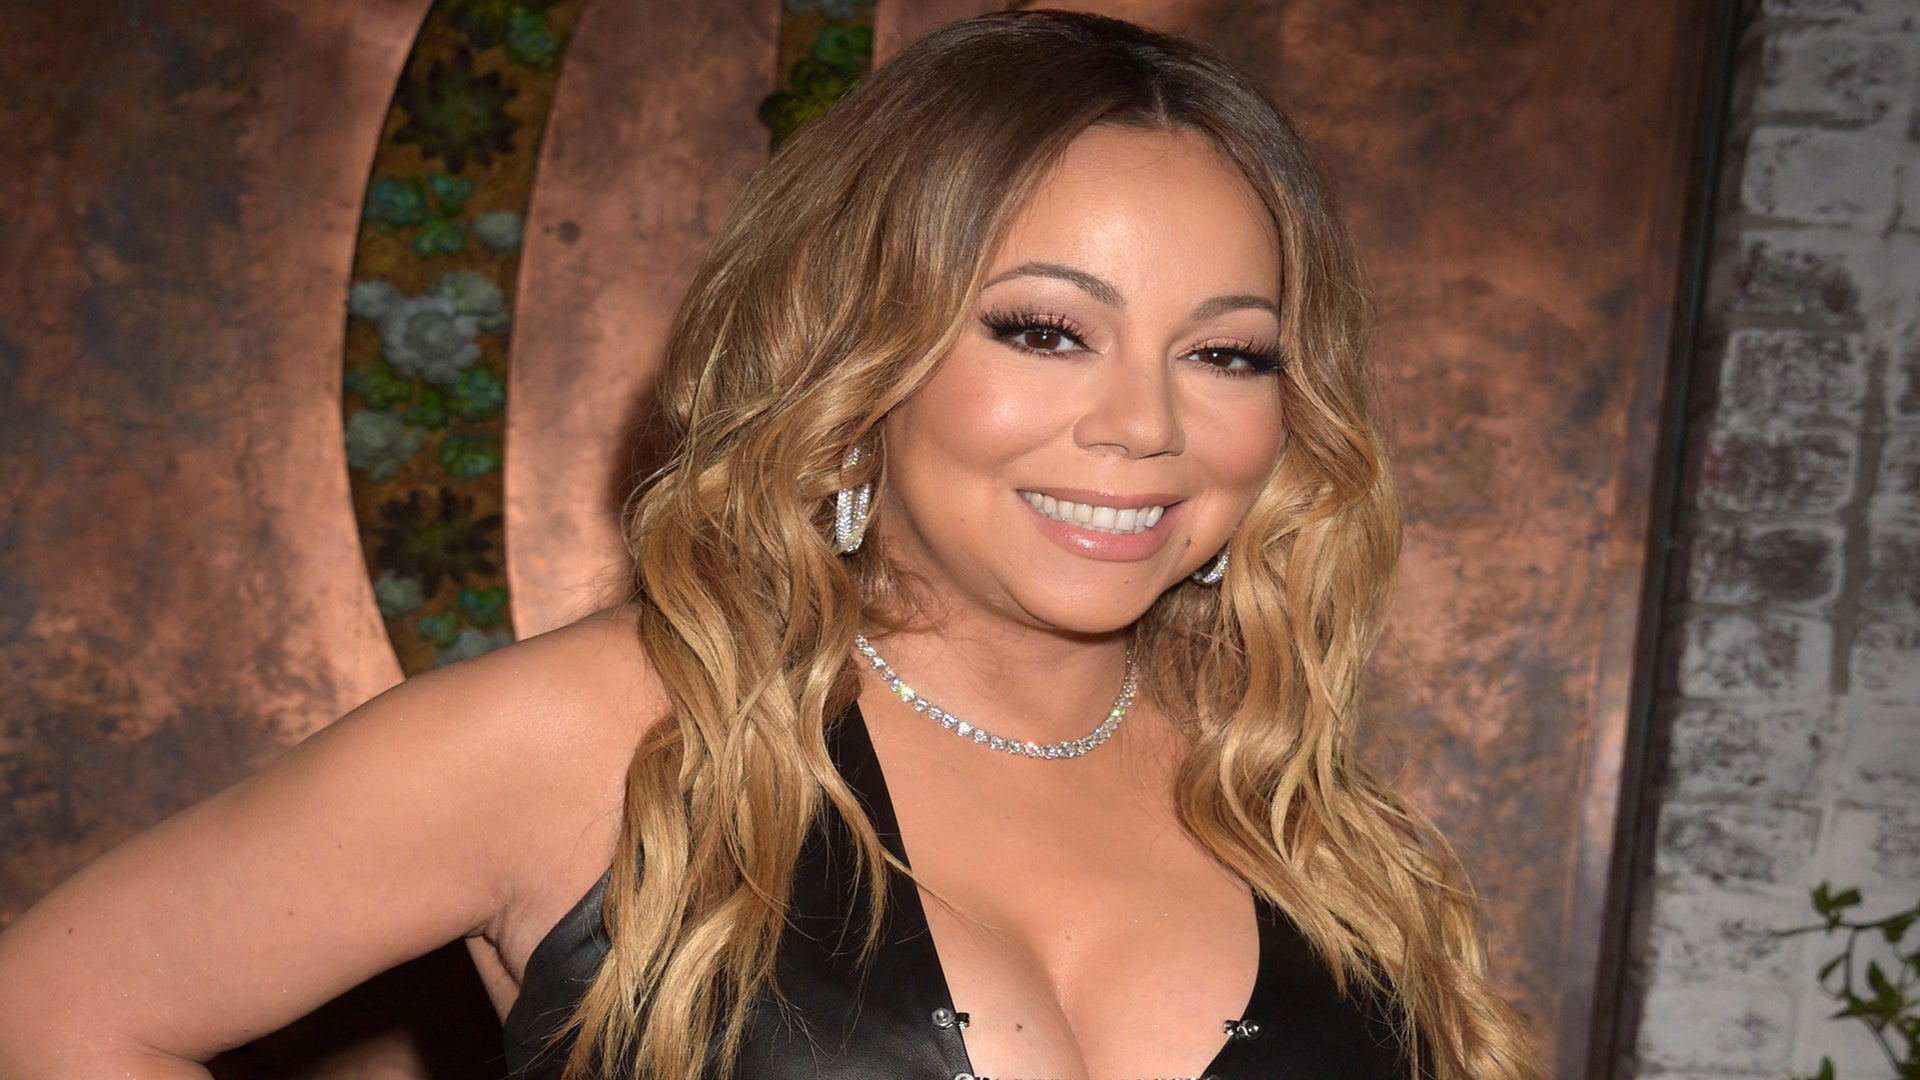 Mariah Carey Admits She's A Diva: 'I Have Had Diva Moments, And Then People Can't Handle It'